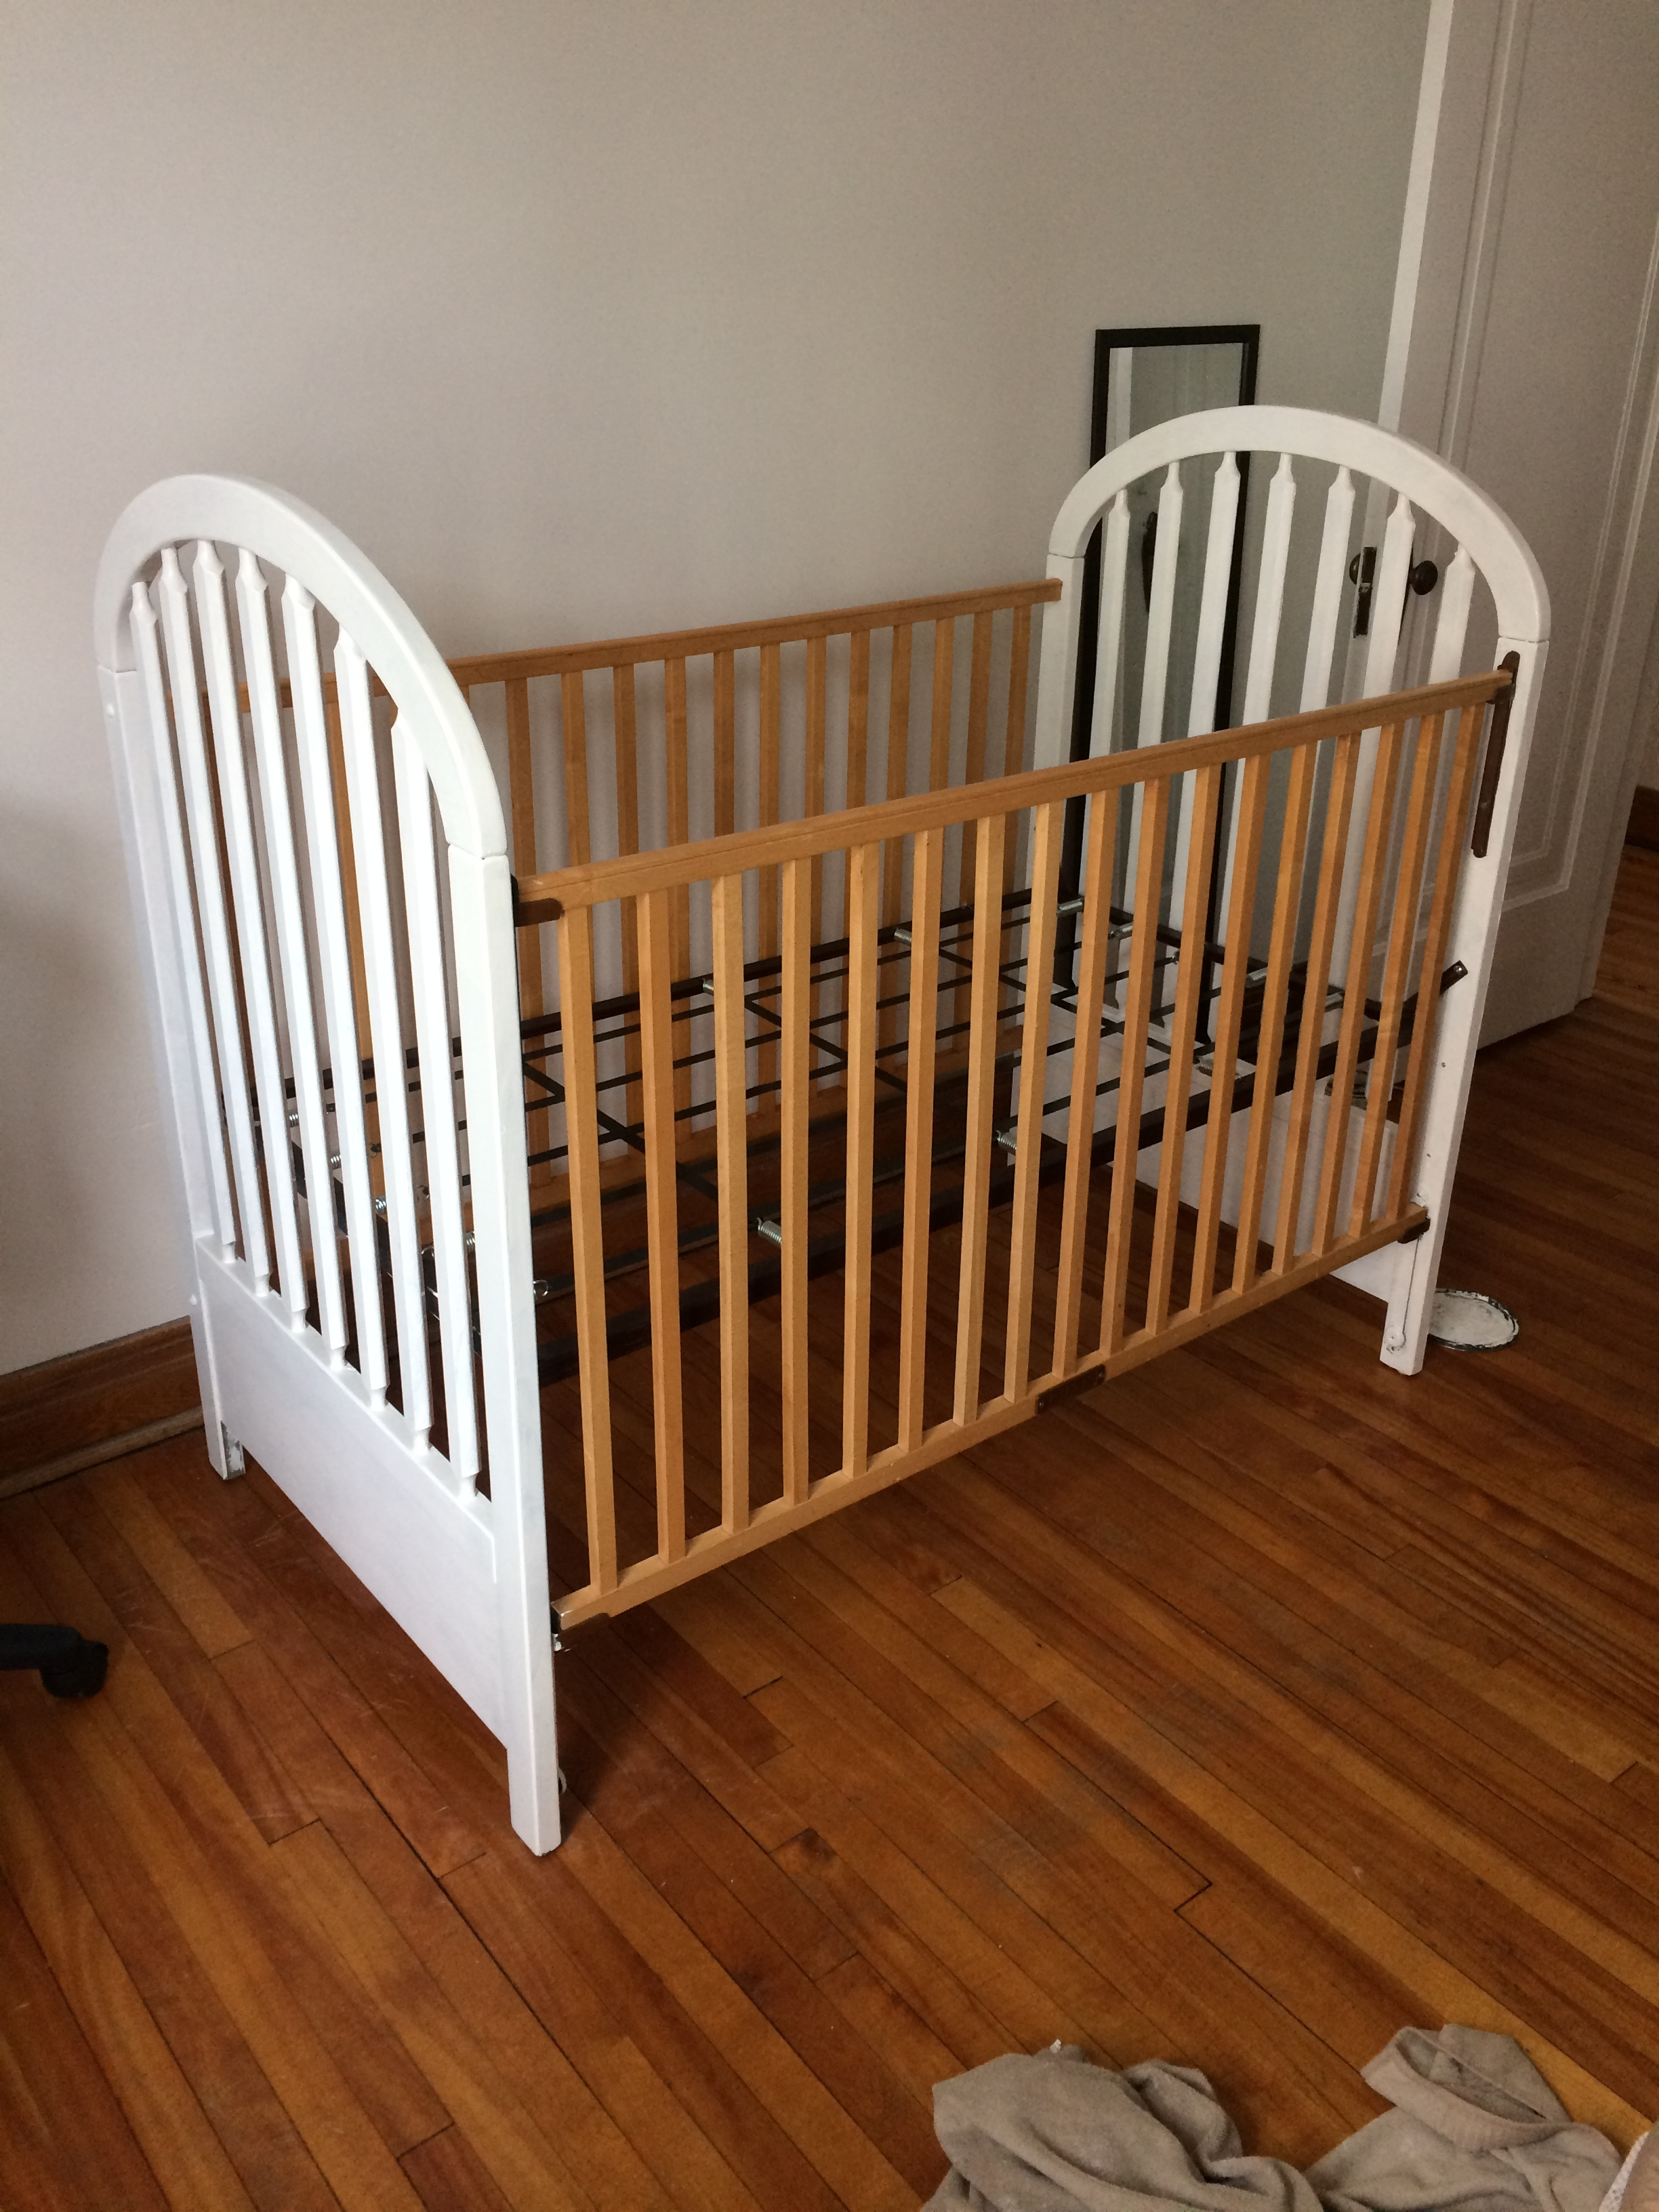 Baby room: Crib after